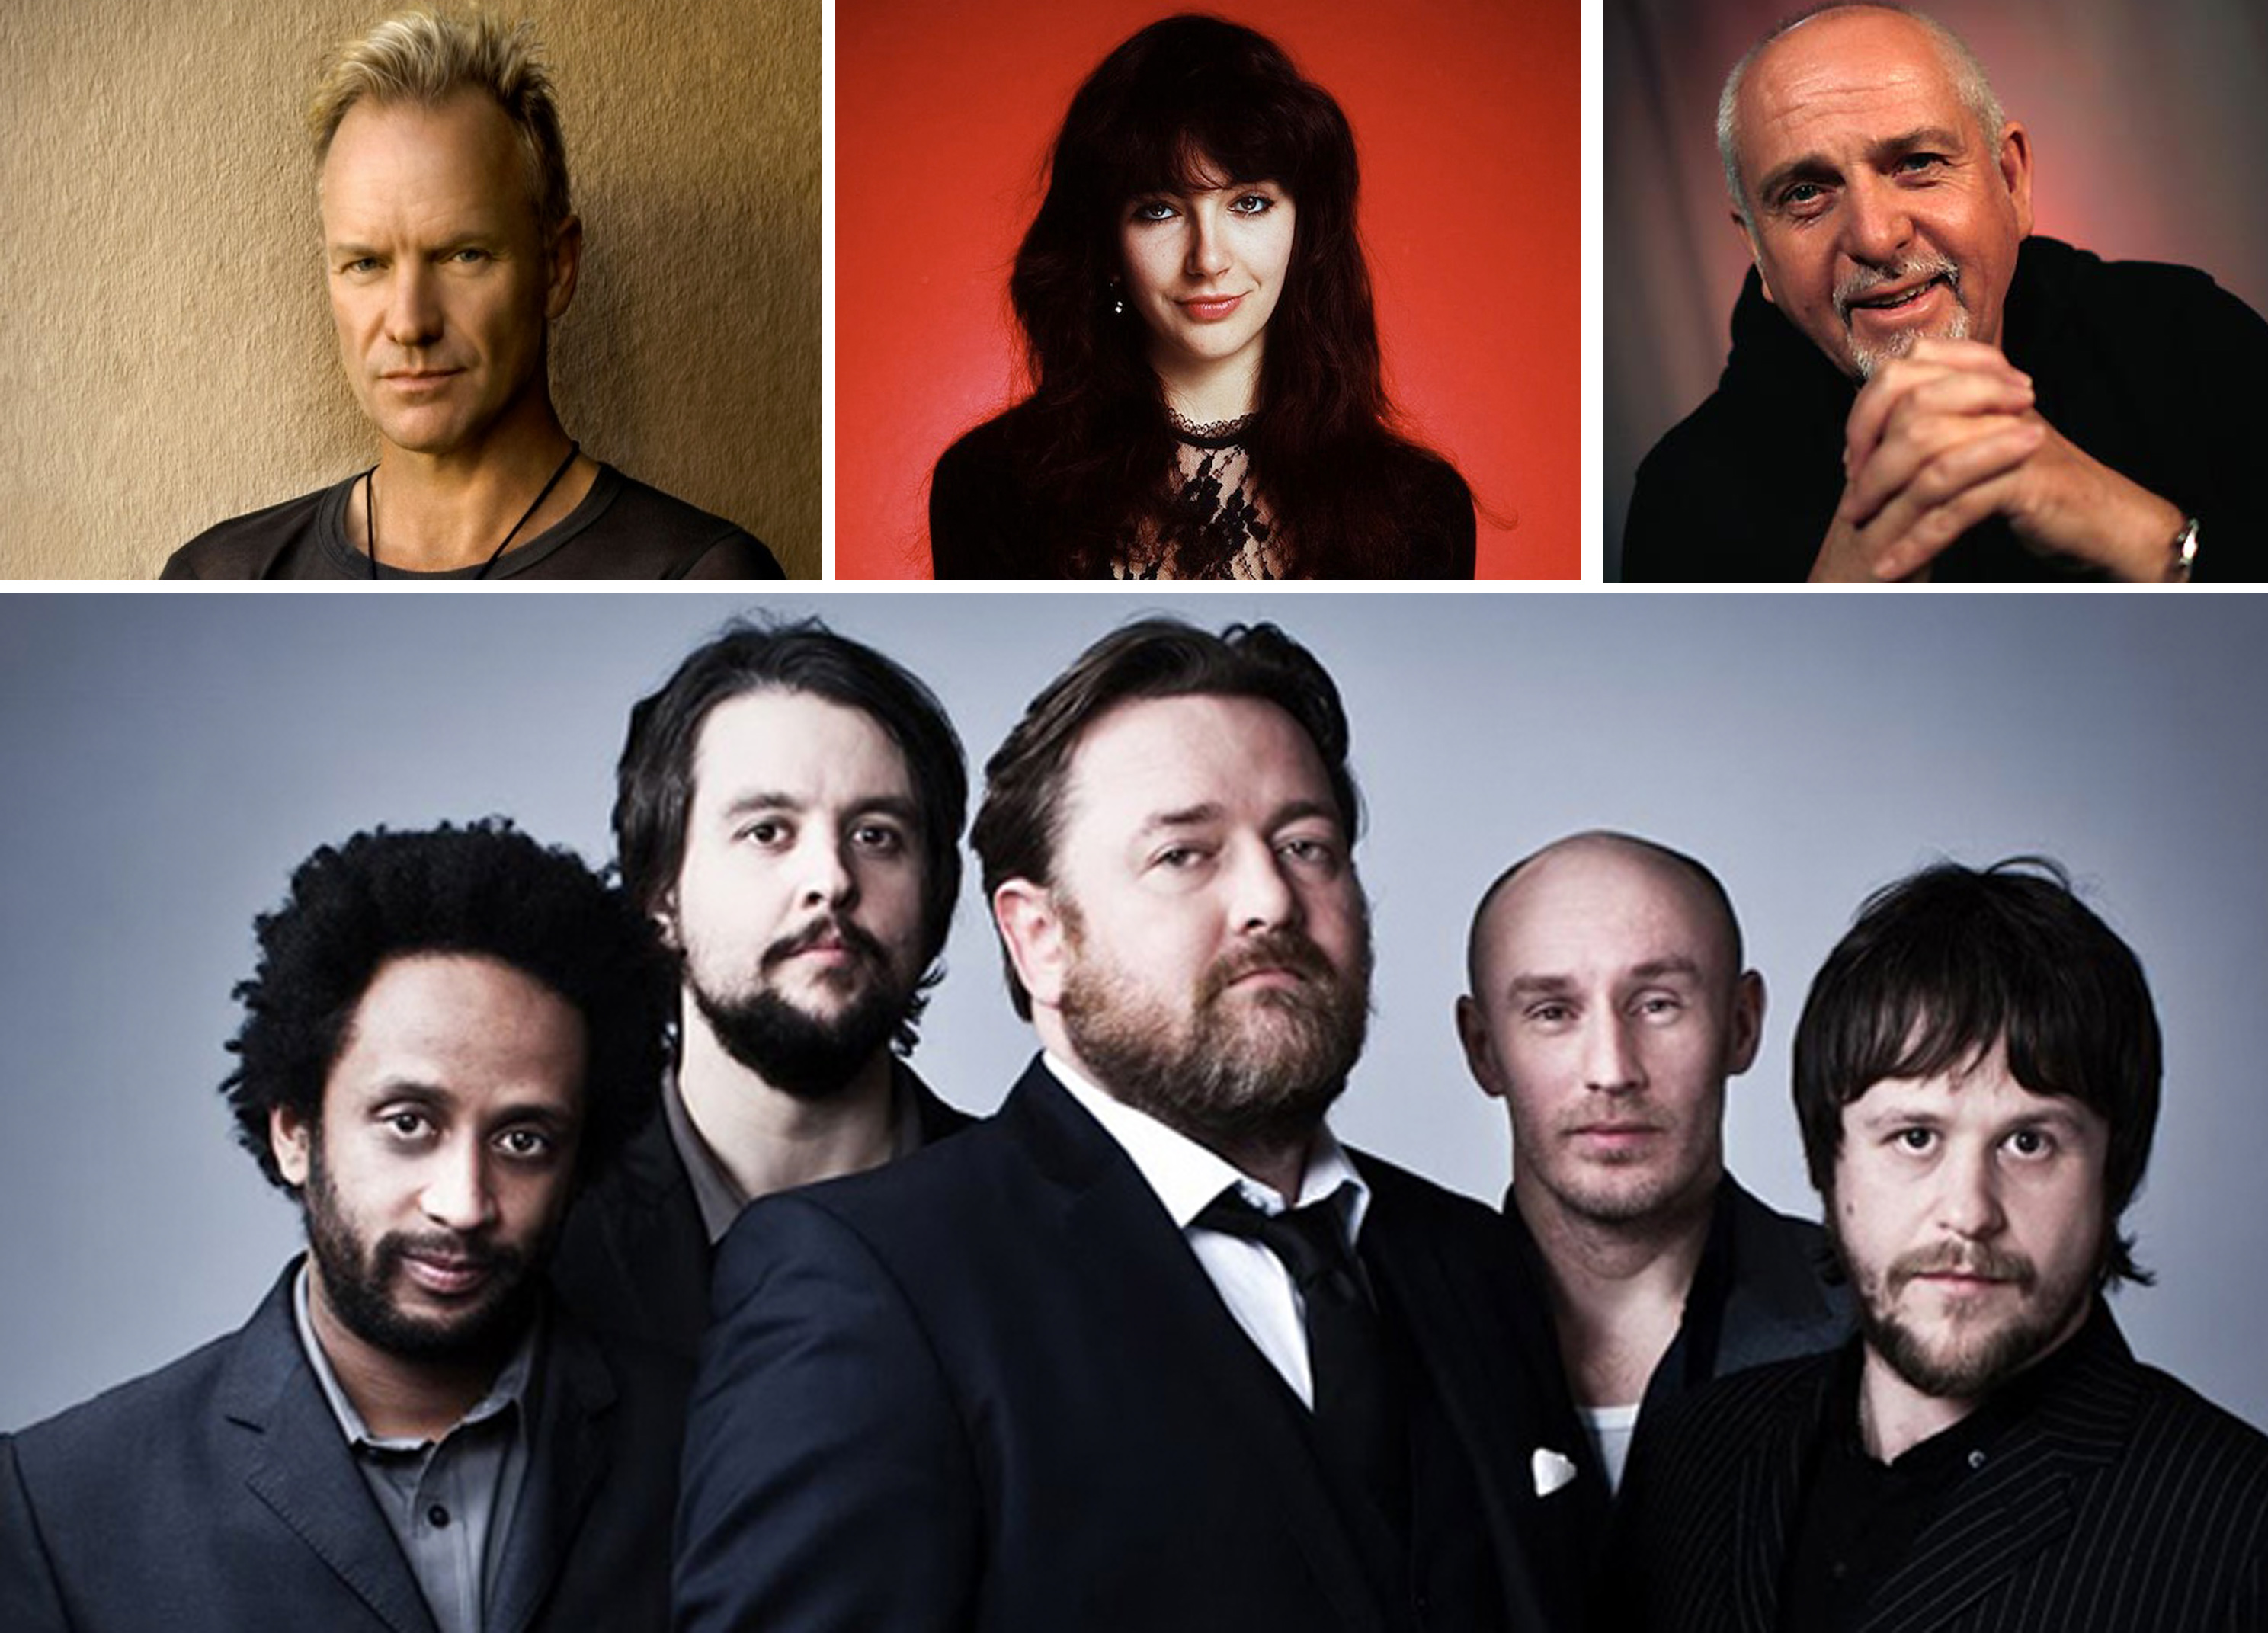 Some of the world's top singers and musicians are contributing tracks for an album to honour Tibet's exiled spiritual leader, the Dalai Lama, on his 80th birthday. From left to right: Sting, Kate Bush, Peter Gabriel, and Elbow